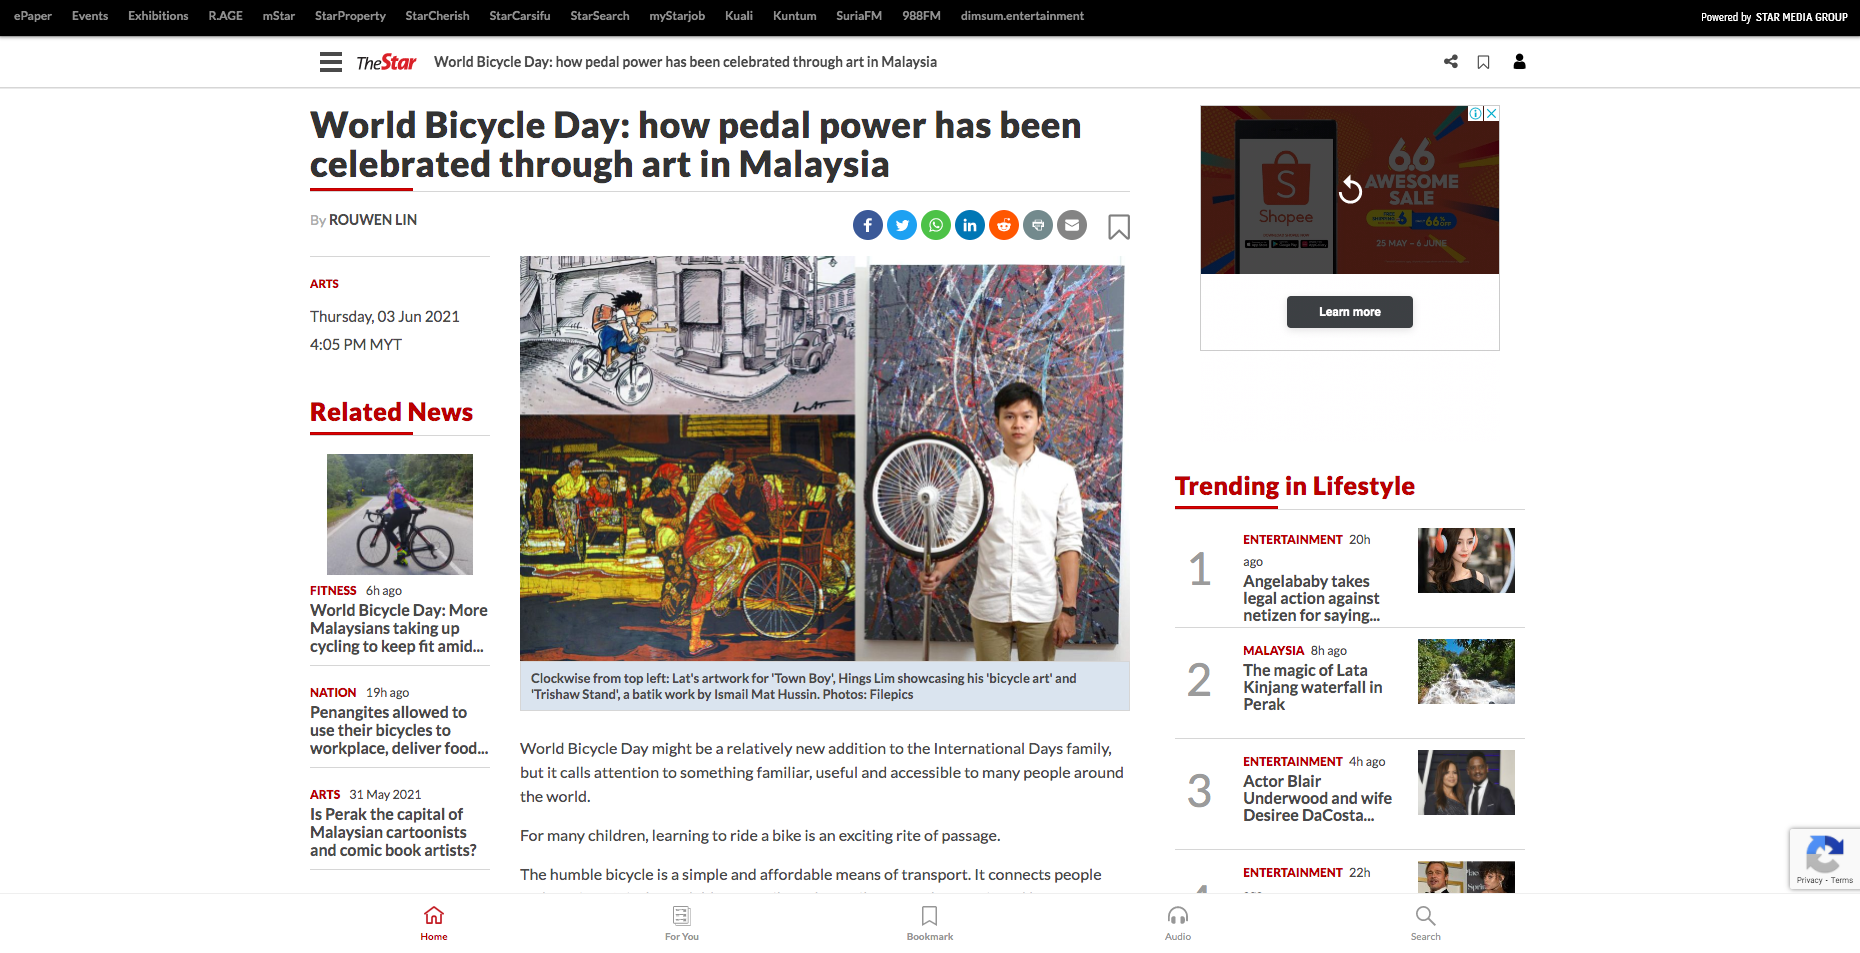 The Star – World Bicycle Day: how pedal power has been celebrated through art in Malaysia